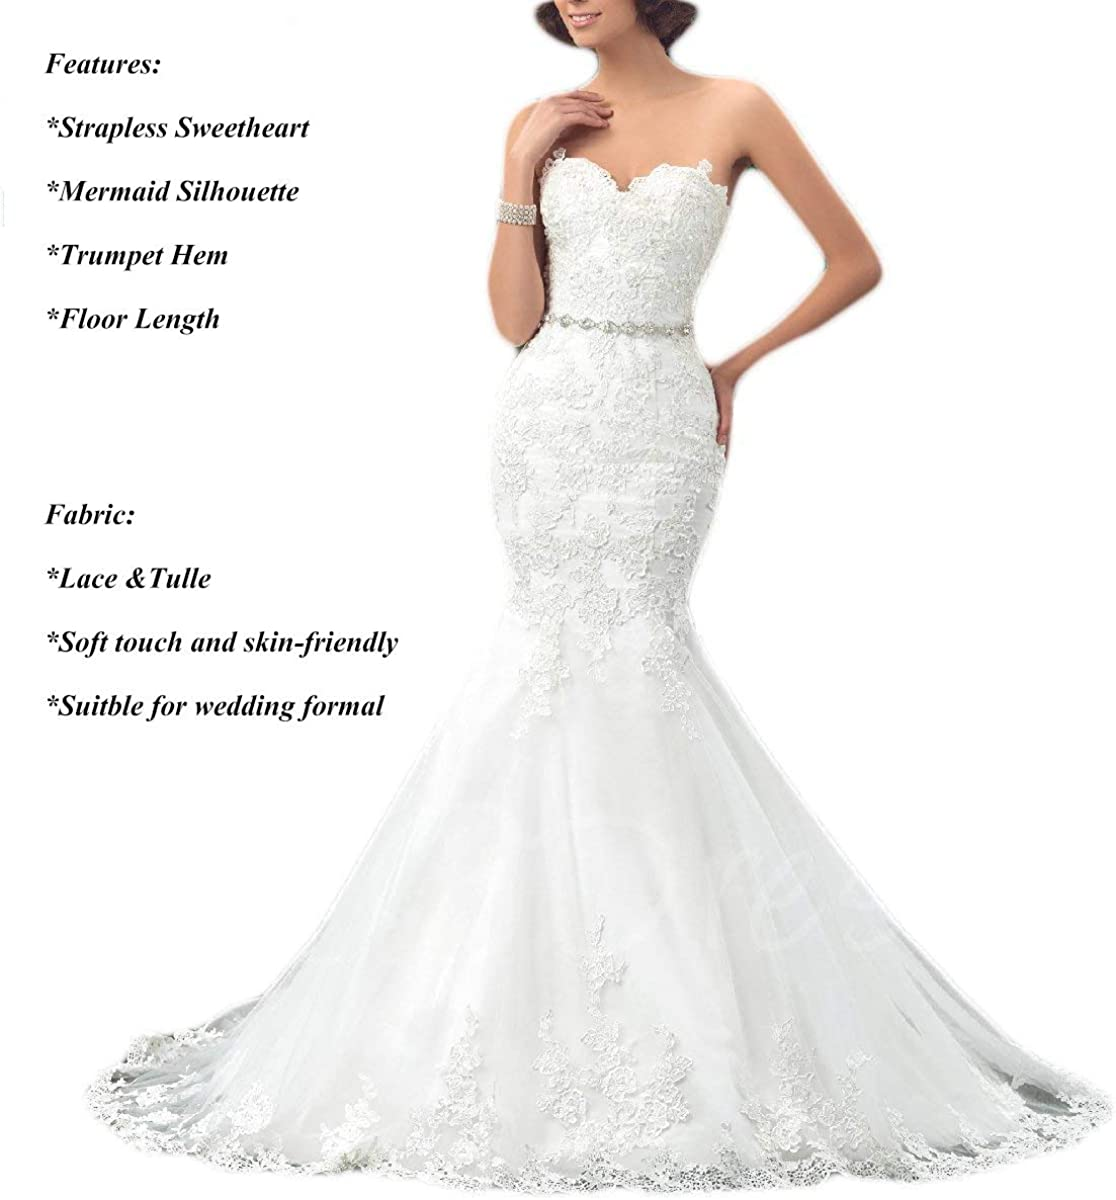 Oyisha Womens Formal Strapless Sweetheart Mermaid Wedding Dress Lace Bridal Dresses Long 2019 Wd162 At Amazon Women S Clothing Store